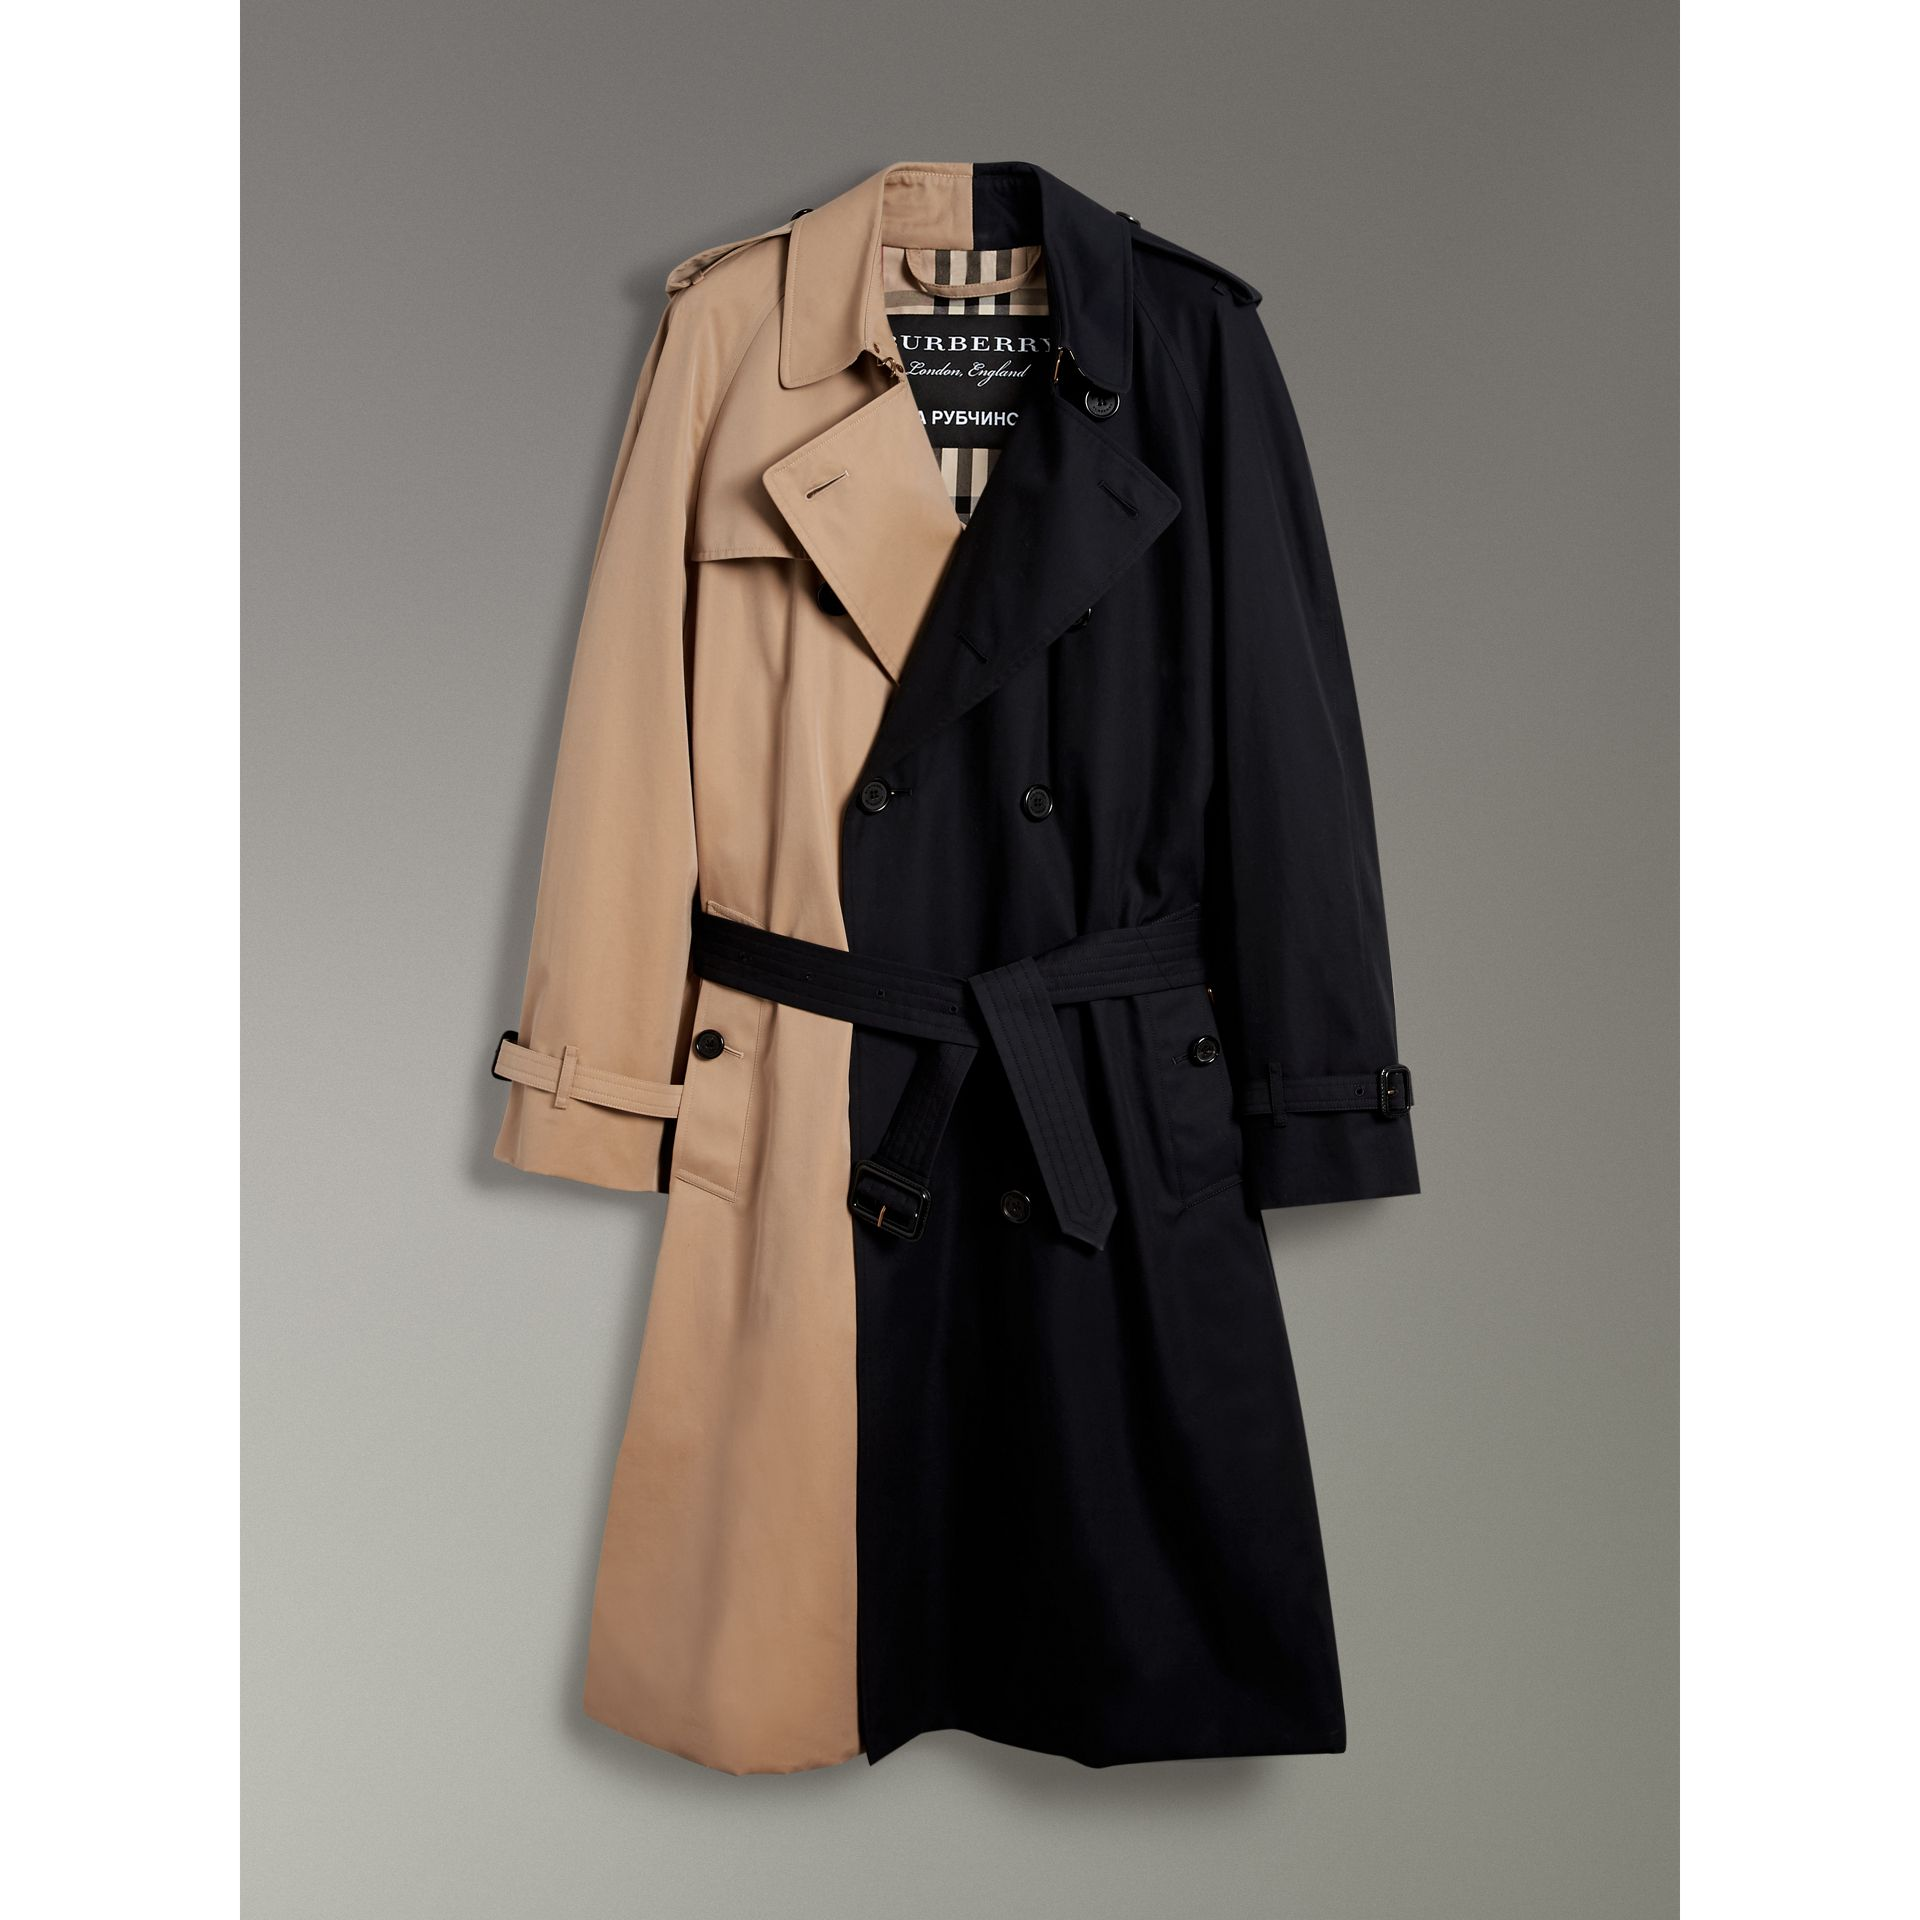 Gosha x Burberry Two-tone Trench Coat in Honey | Burberry Hong Kong - gallery image 4